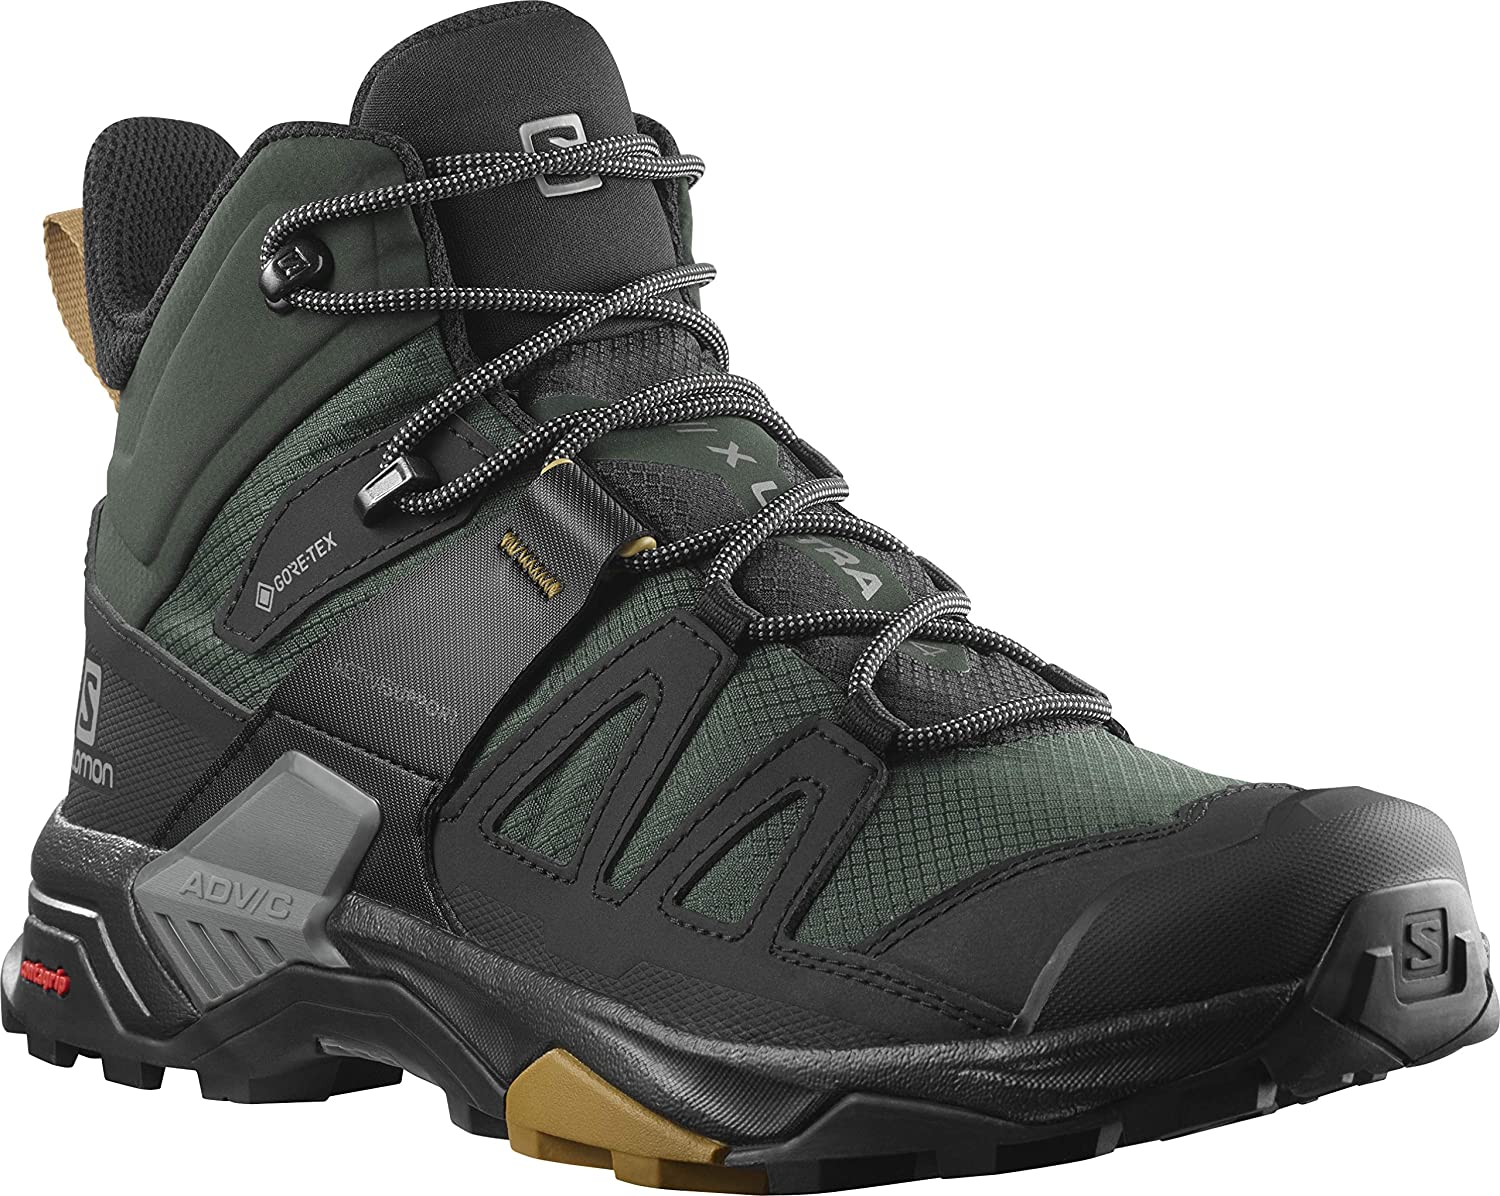 Salomon Men's Special price for a limited time X Ultra Mid Hiking GTX 4 Max 86% OFF